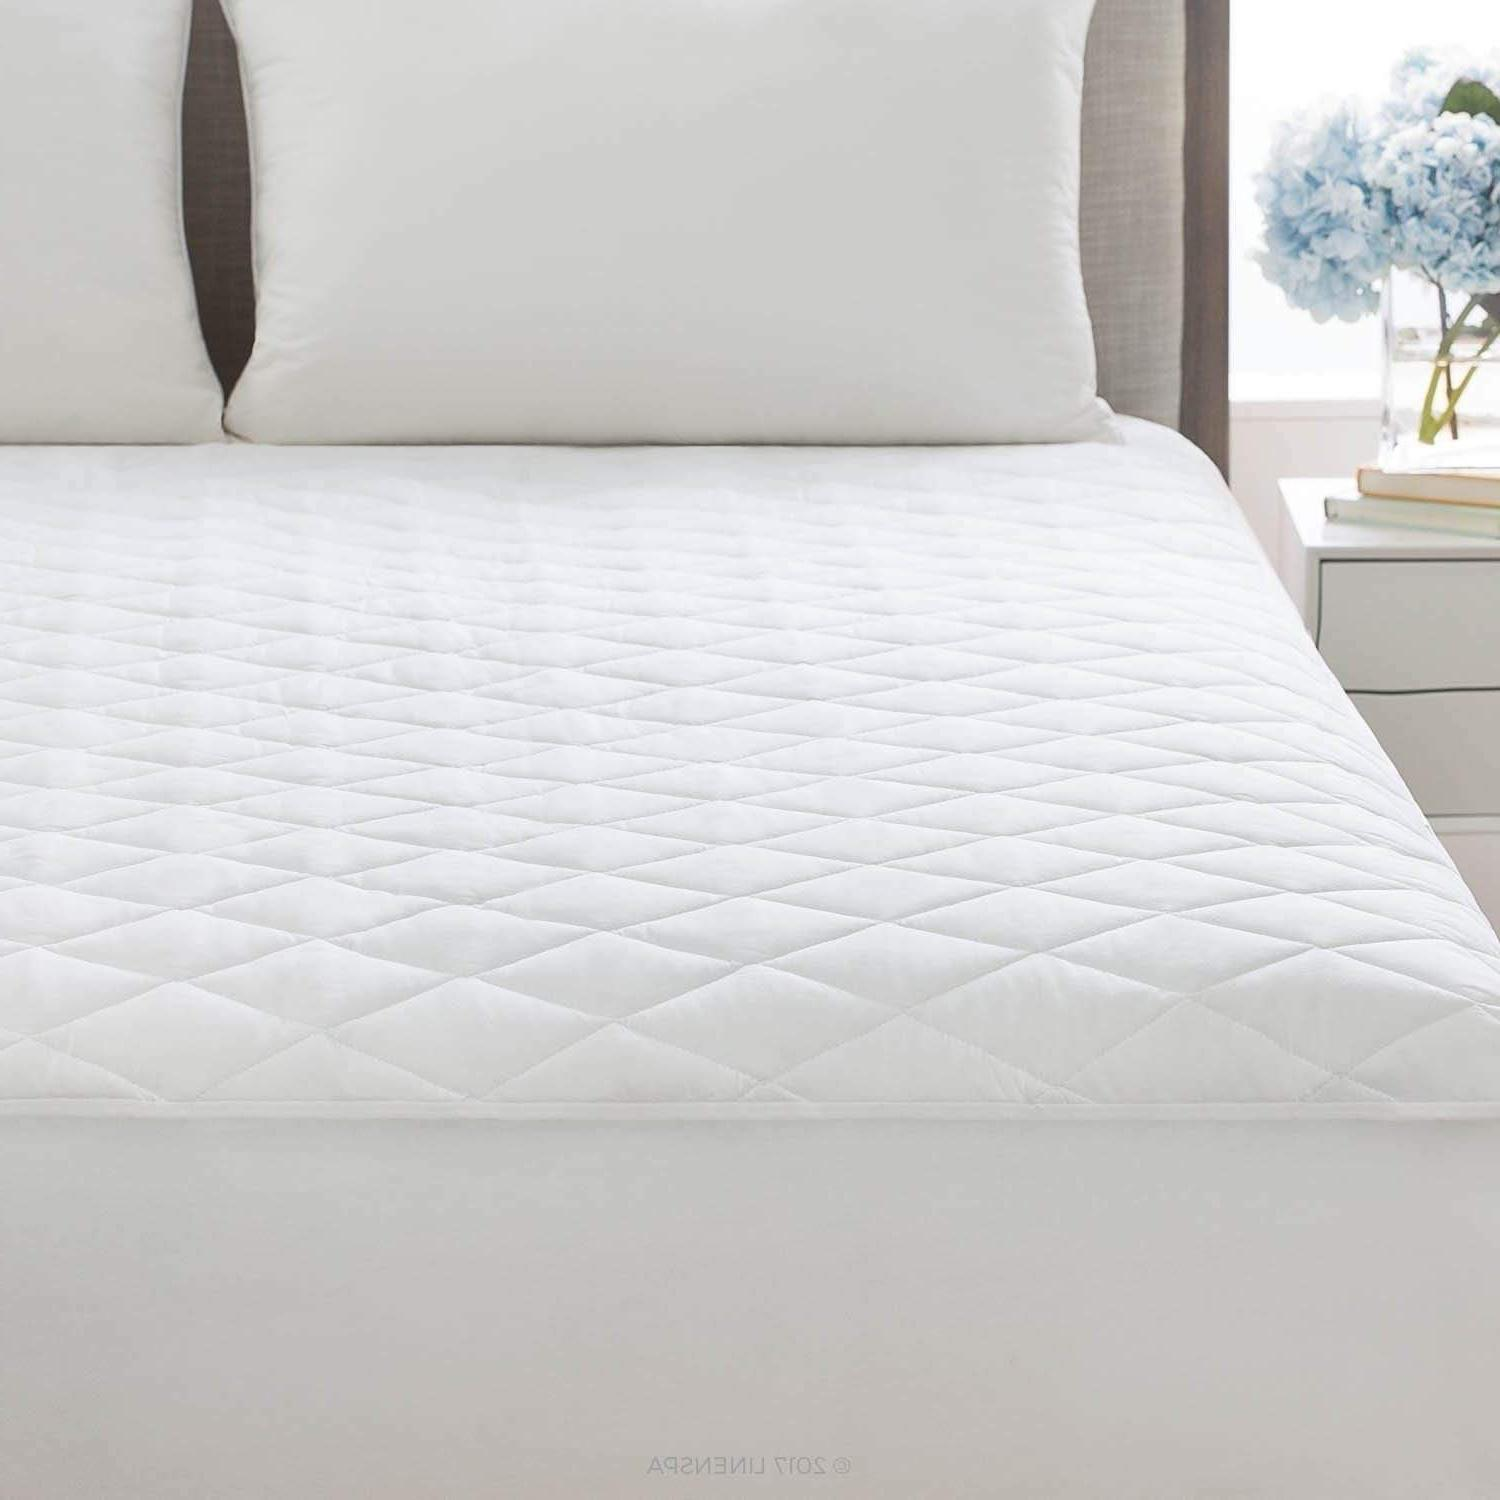 "Queen Size Protector 16"" Deep Bed Sheet"